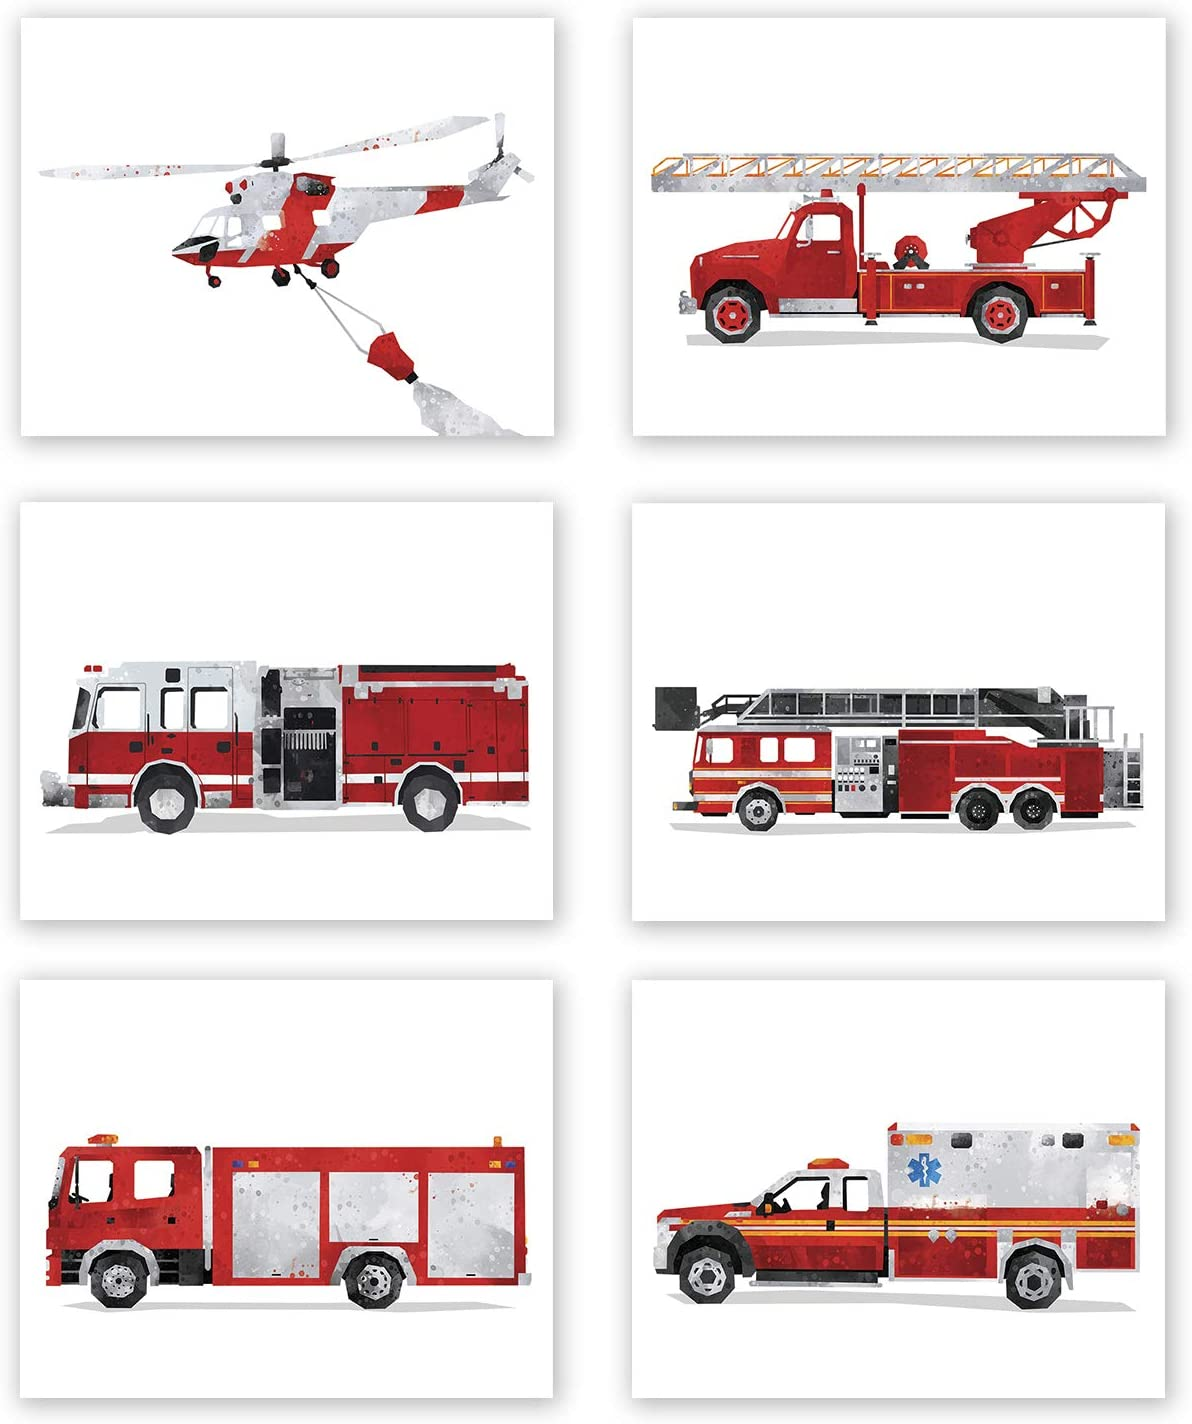 Fire Truck Decor - Set of 6 Prints // Firetruck Nursery Posters // Fire Engine Birthday Party Decoration // Transportation Wall Art for Boy Toddler Bedroom Picture // Ambulance // Rescue (8x10, Set 6)